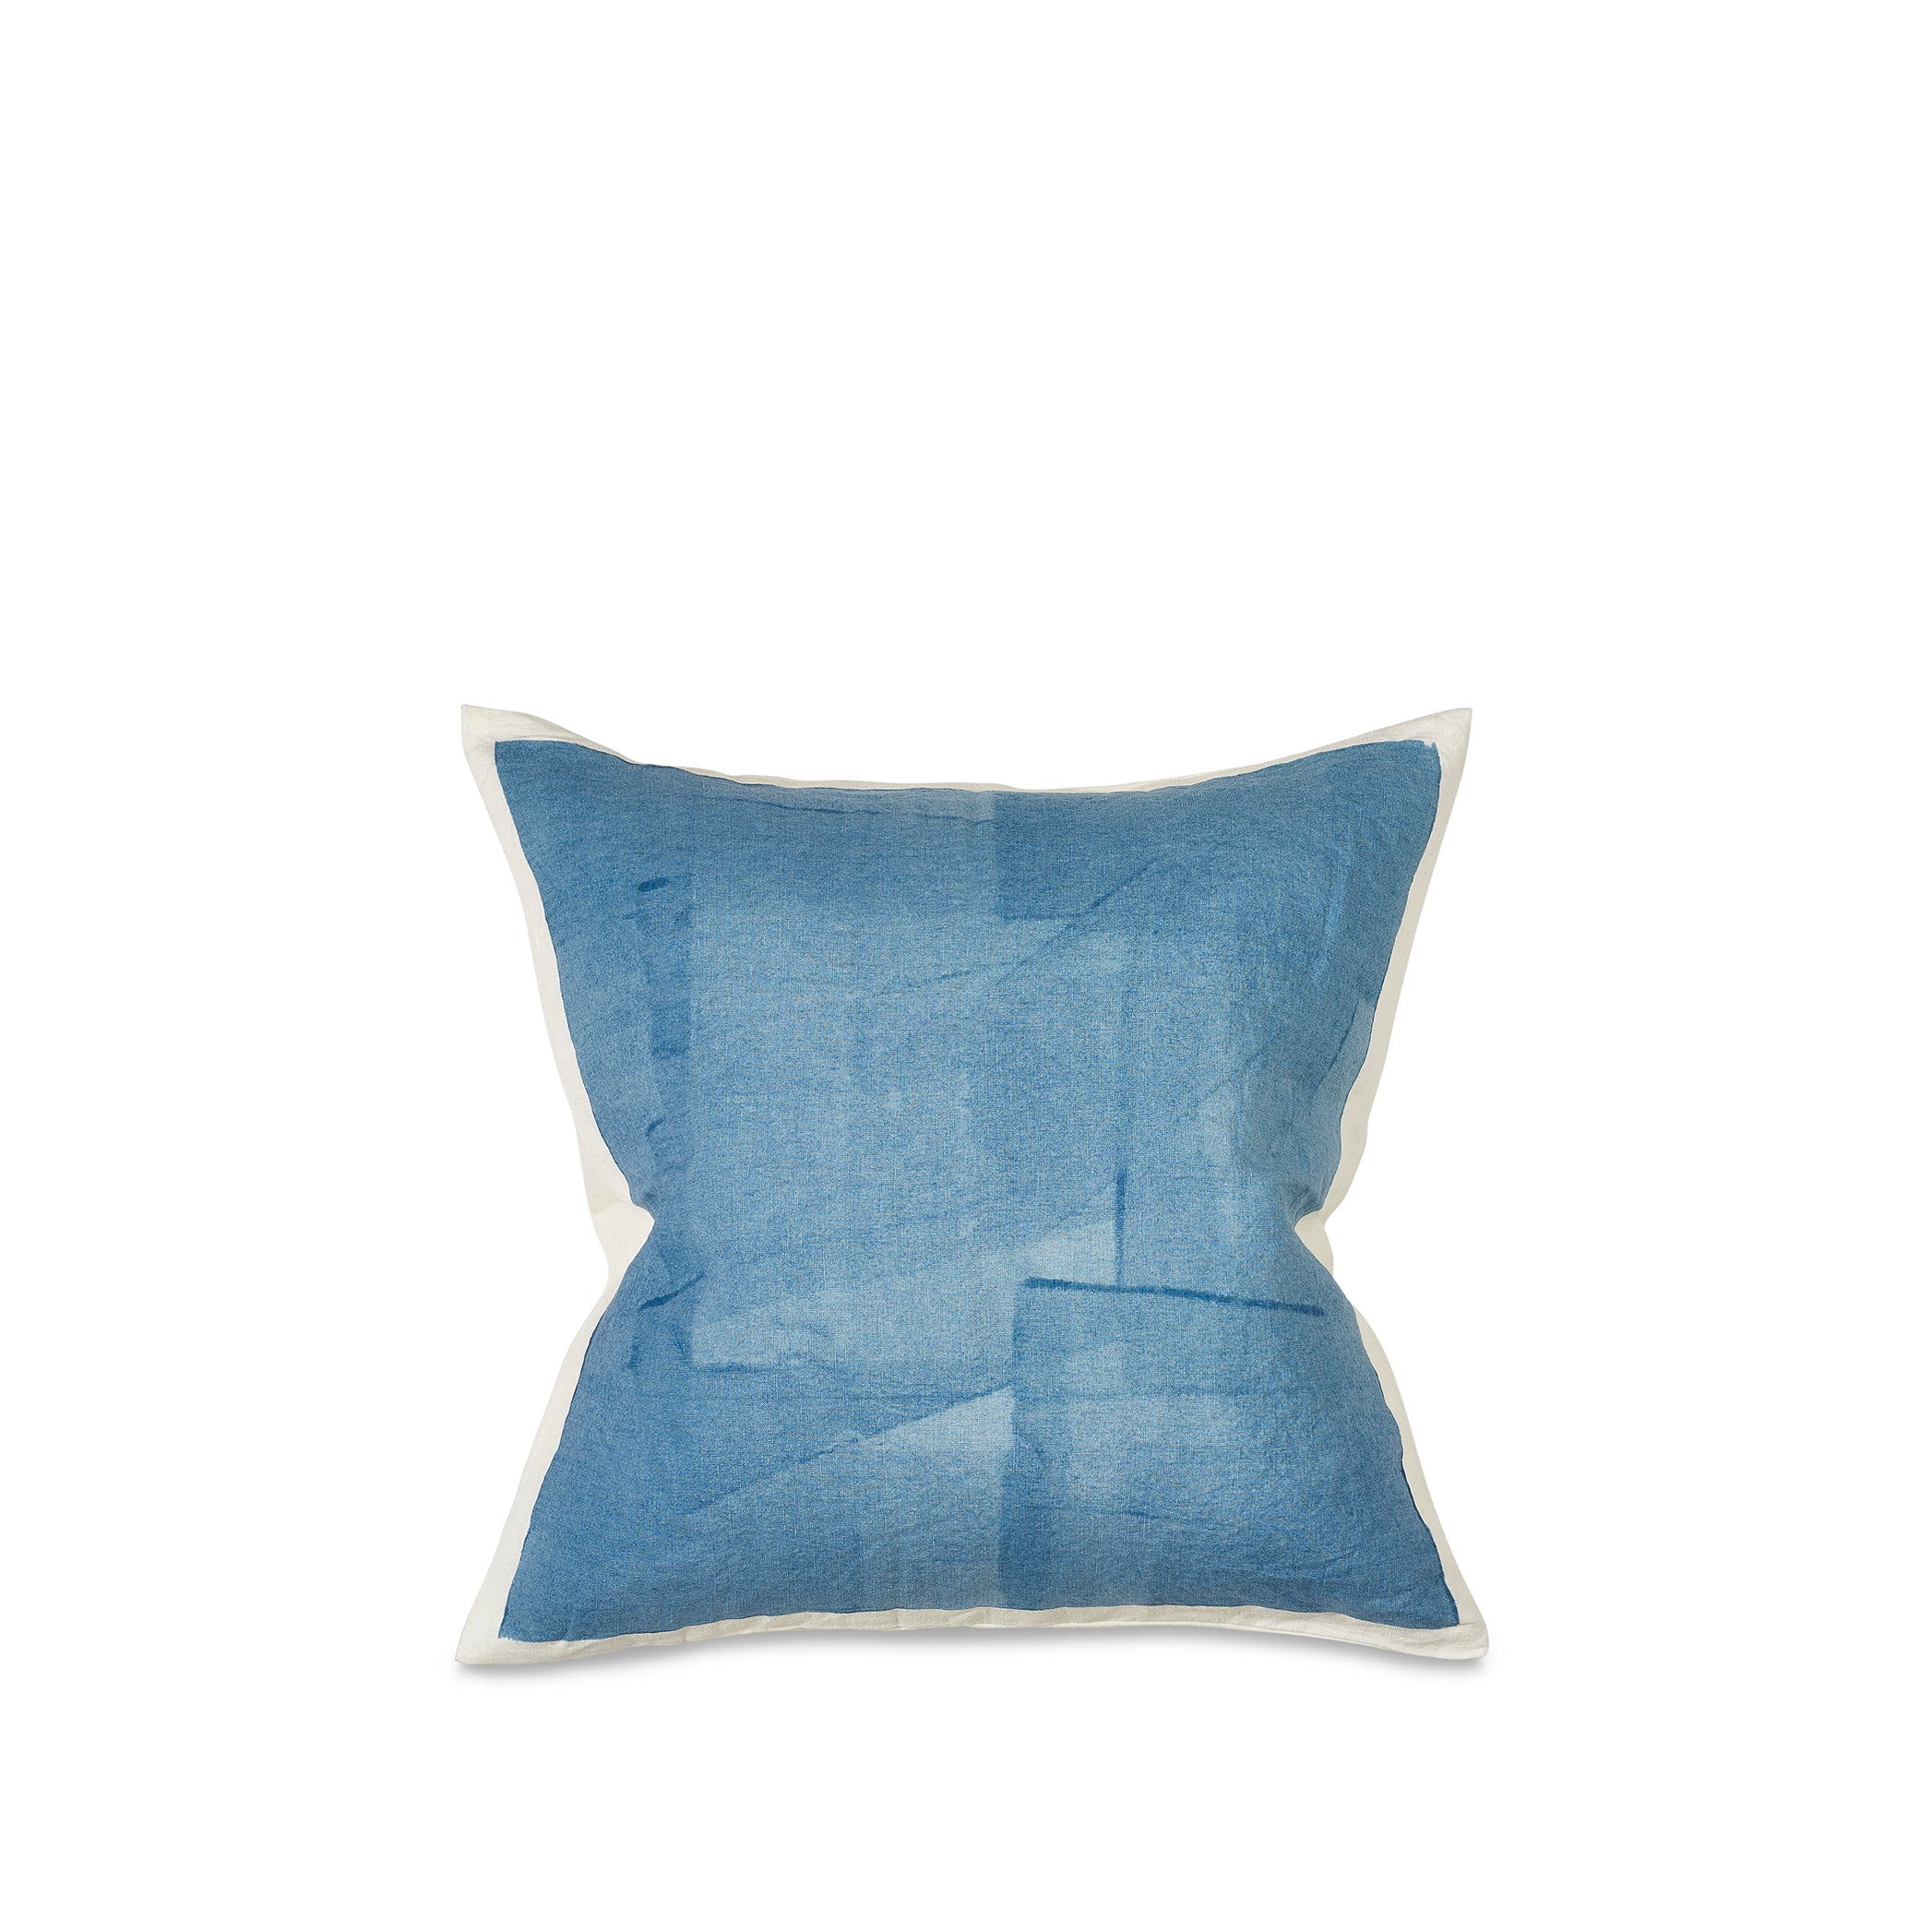 Hand Painted Linen Cushion in Sky Blue, 50cm x 50cm